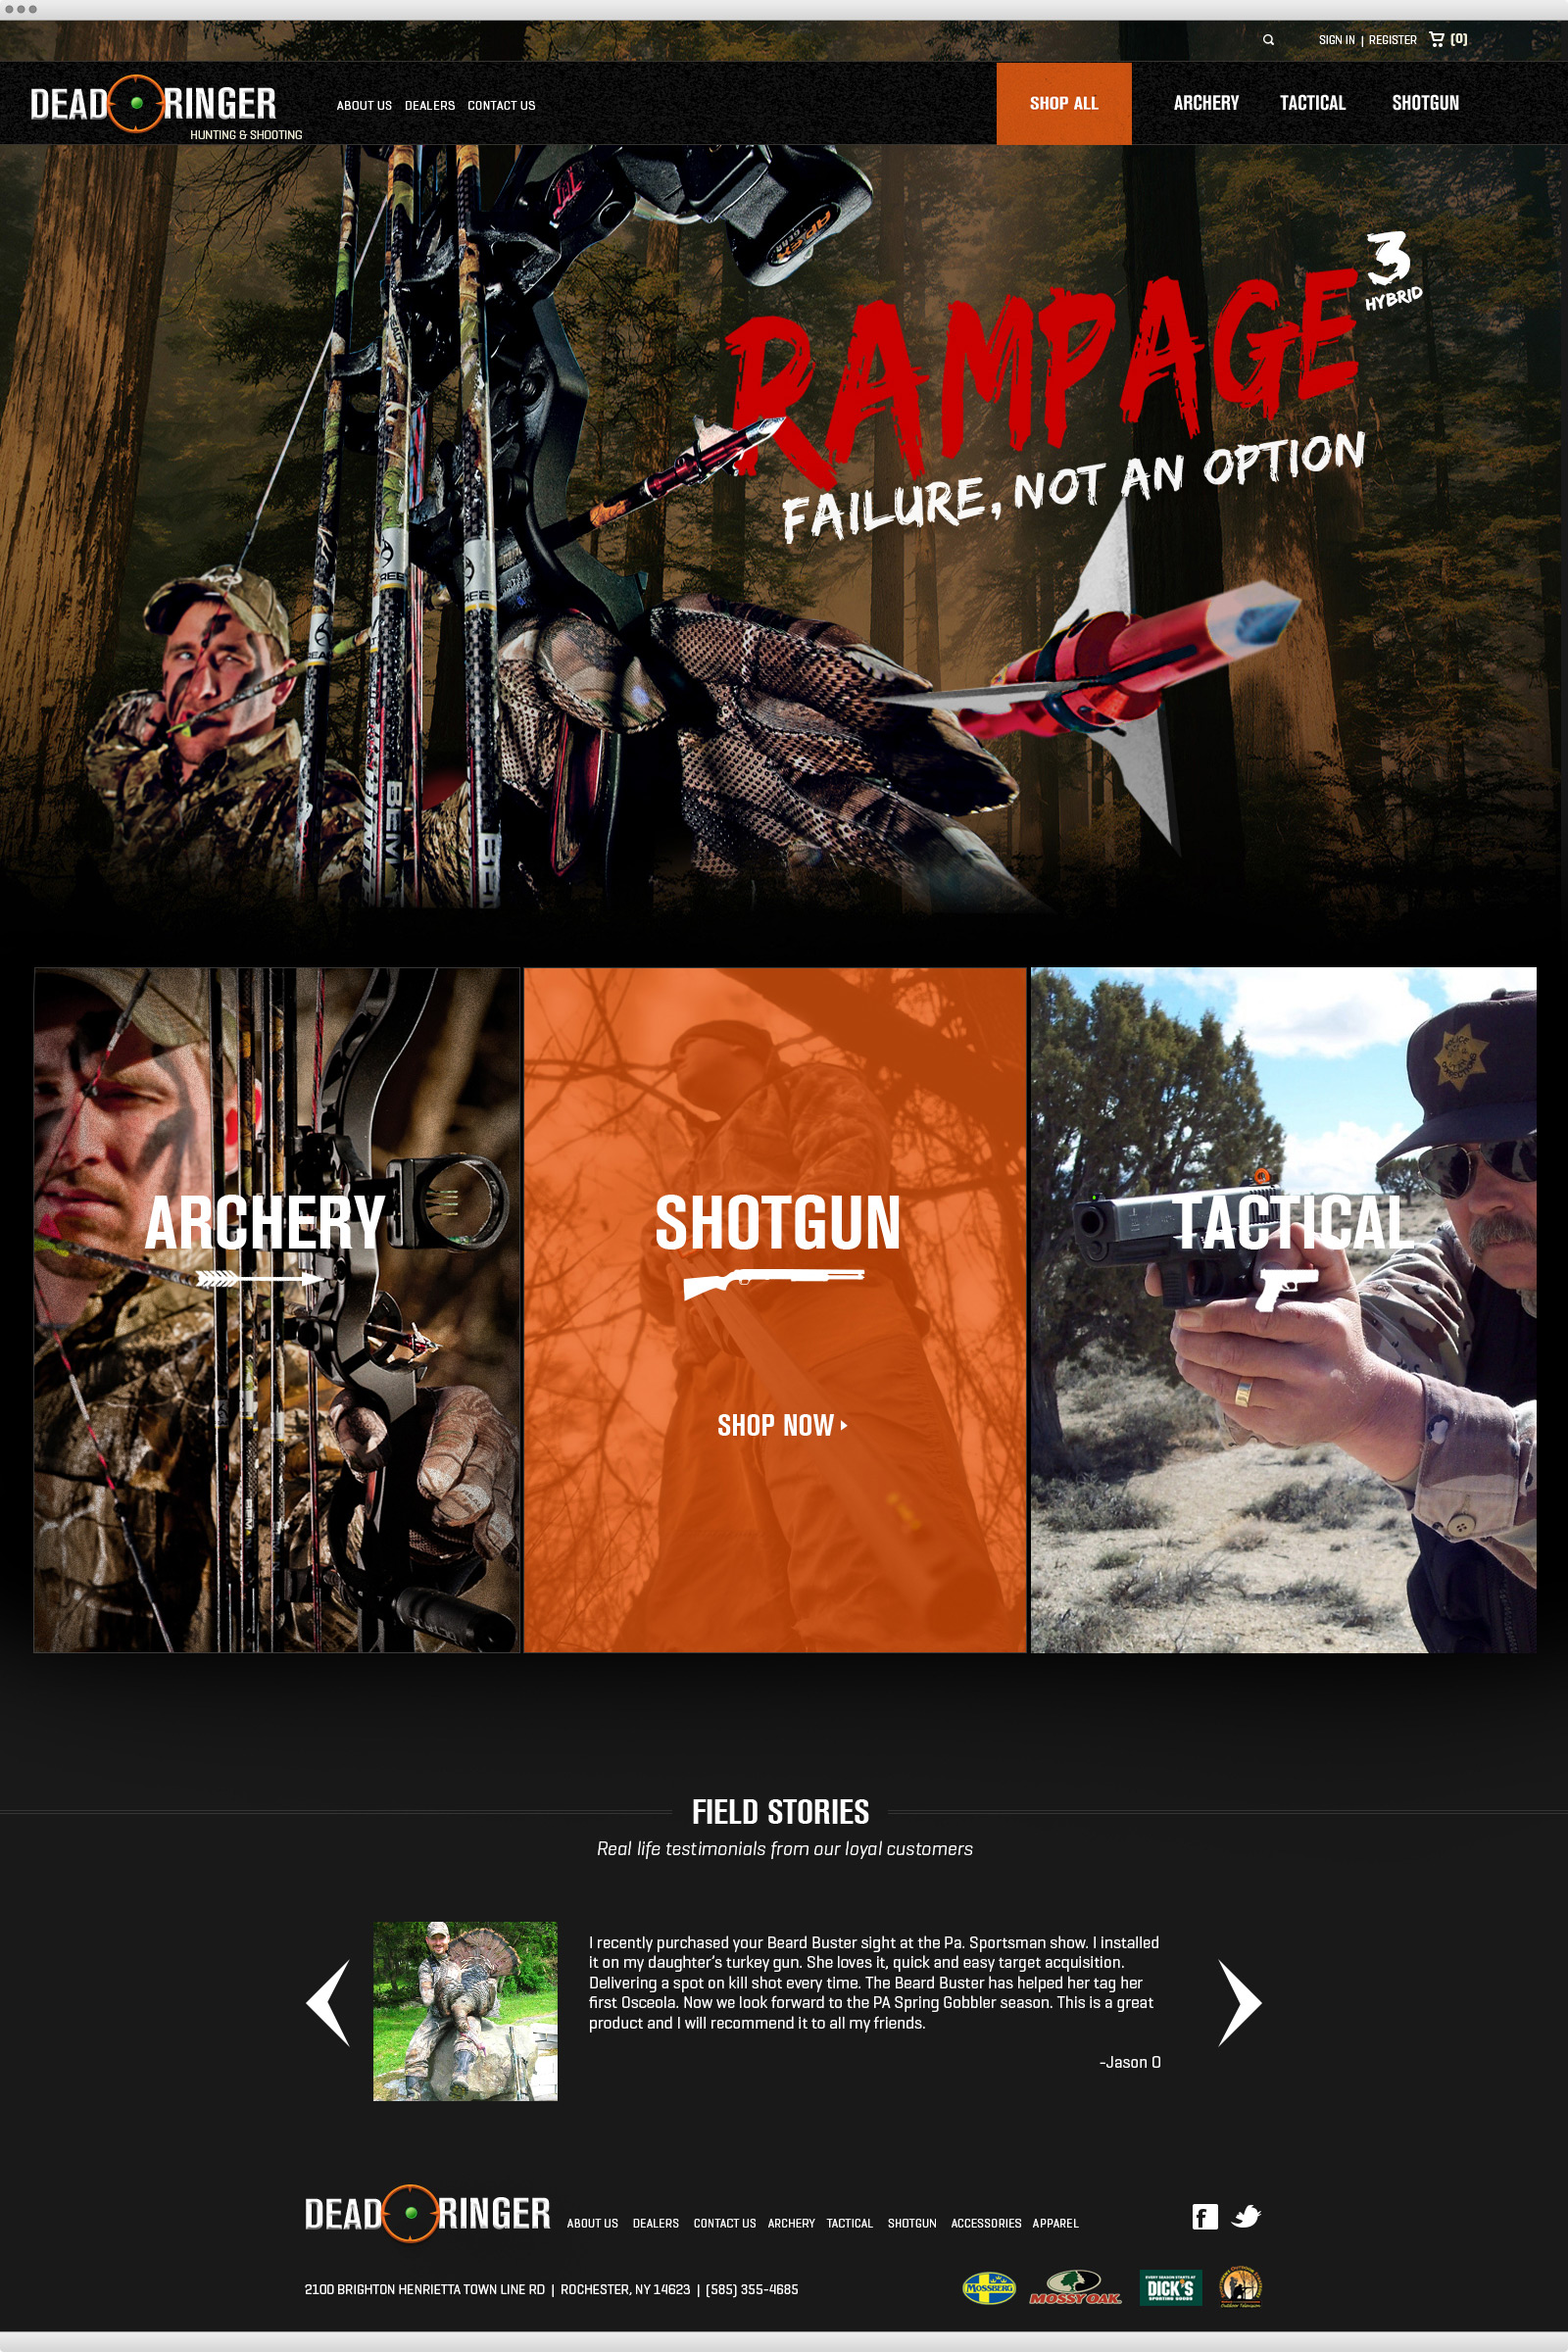 Dead Ringer Hunting website design